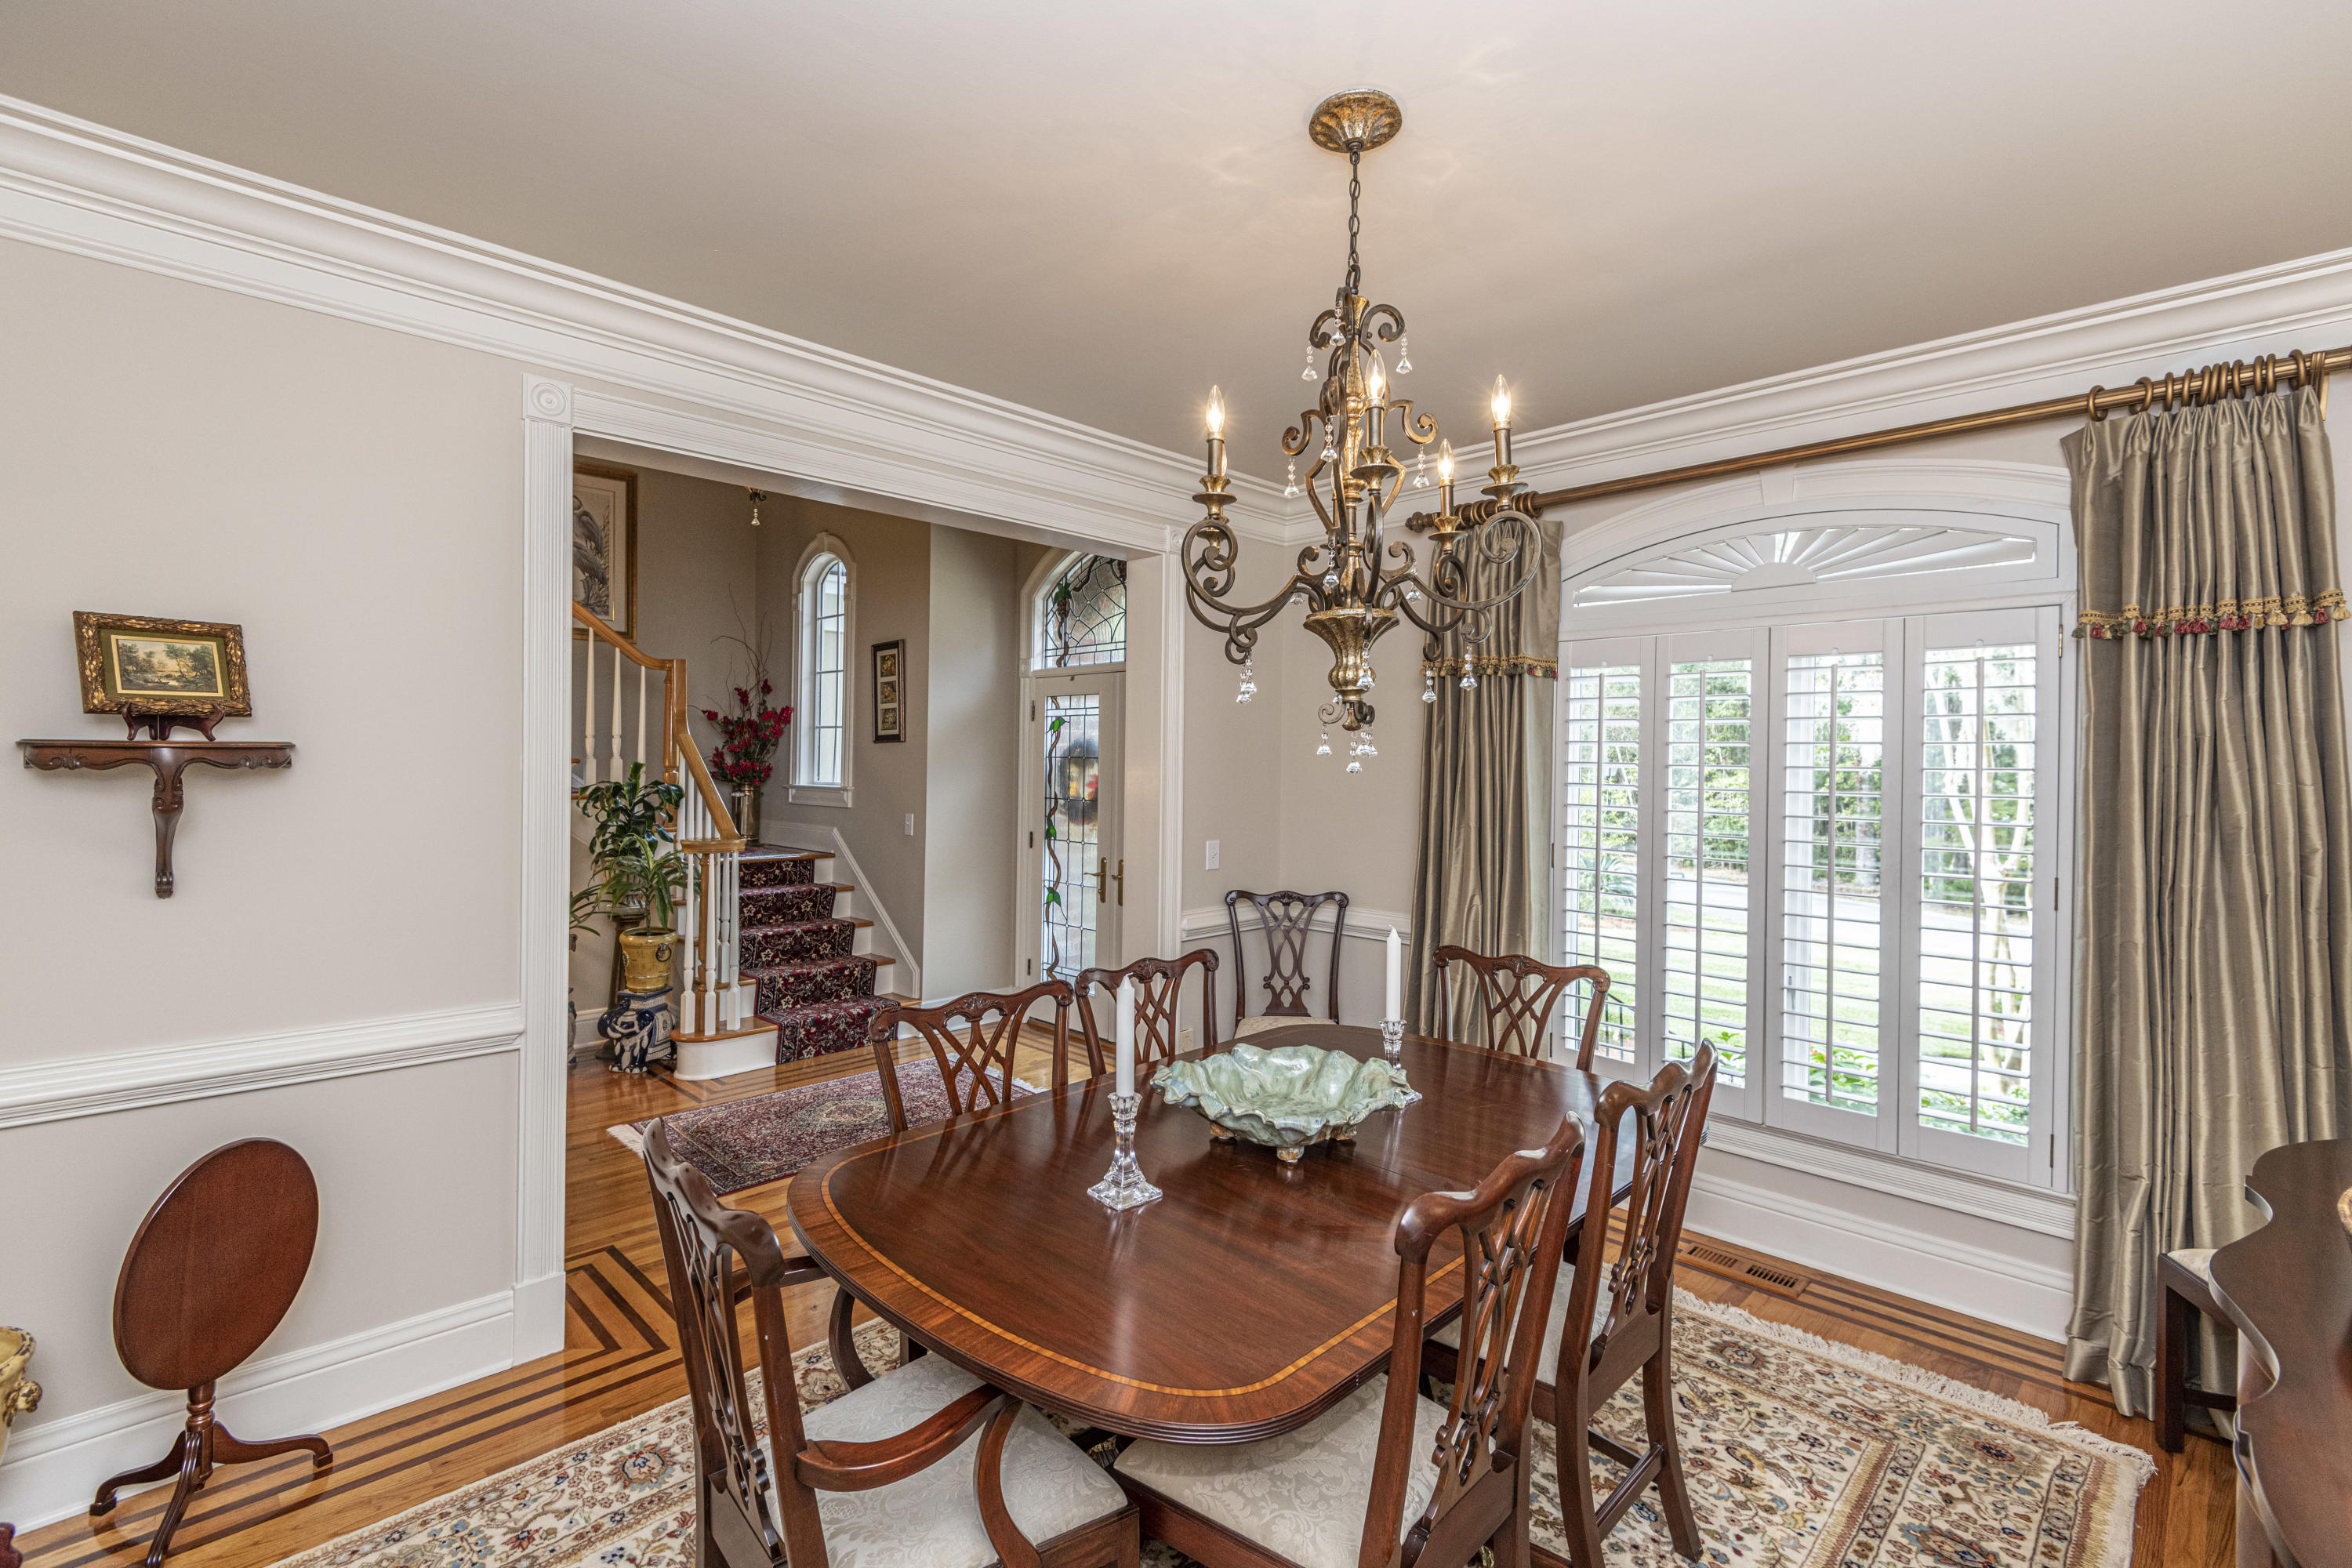 Coosaw Creek Country Club Homes For Sale - 8642 Fairway Woods, North Charleston, SC - 23